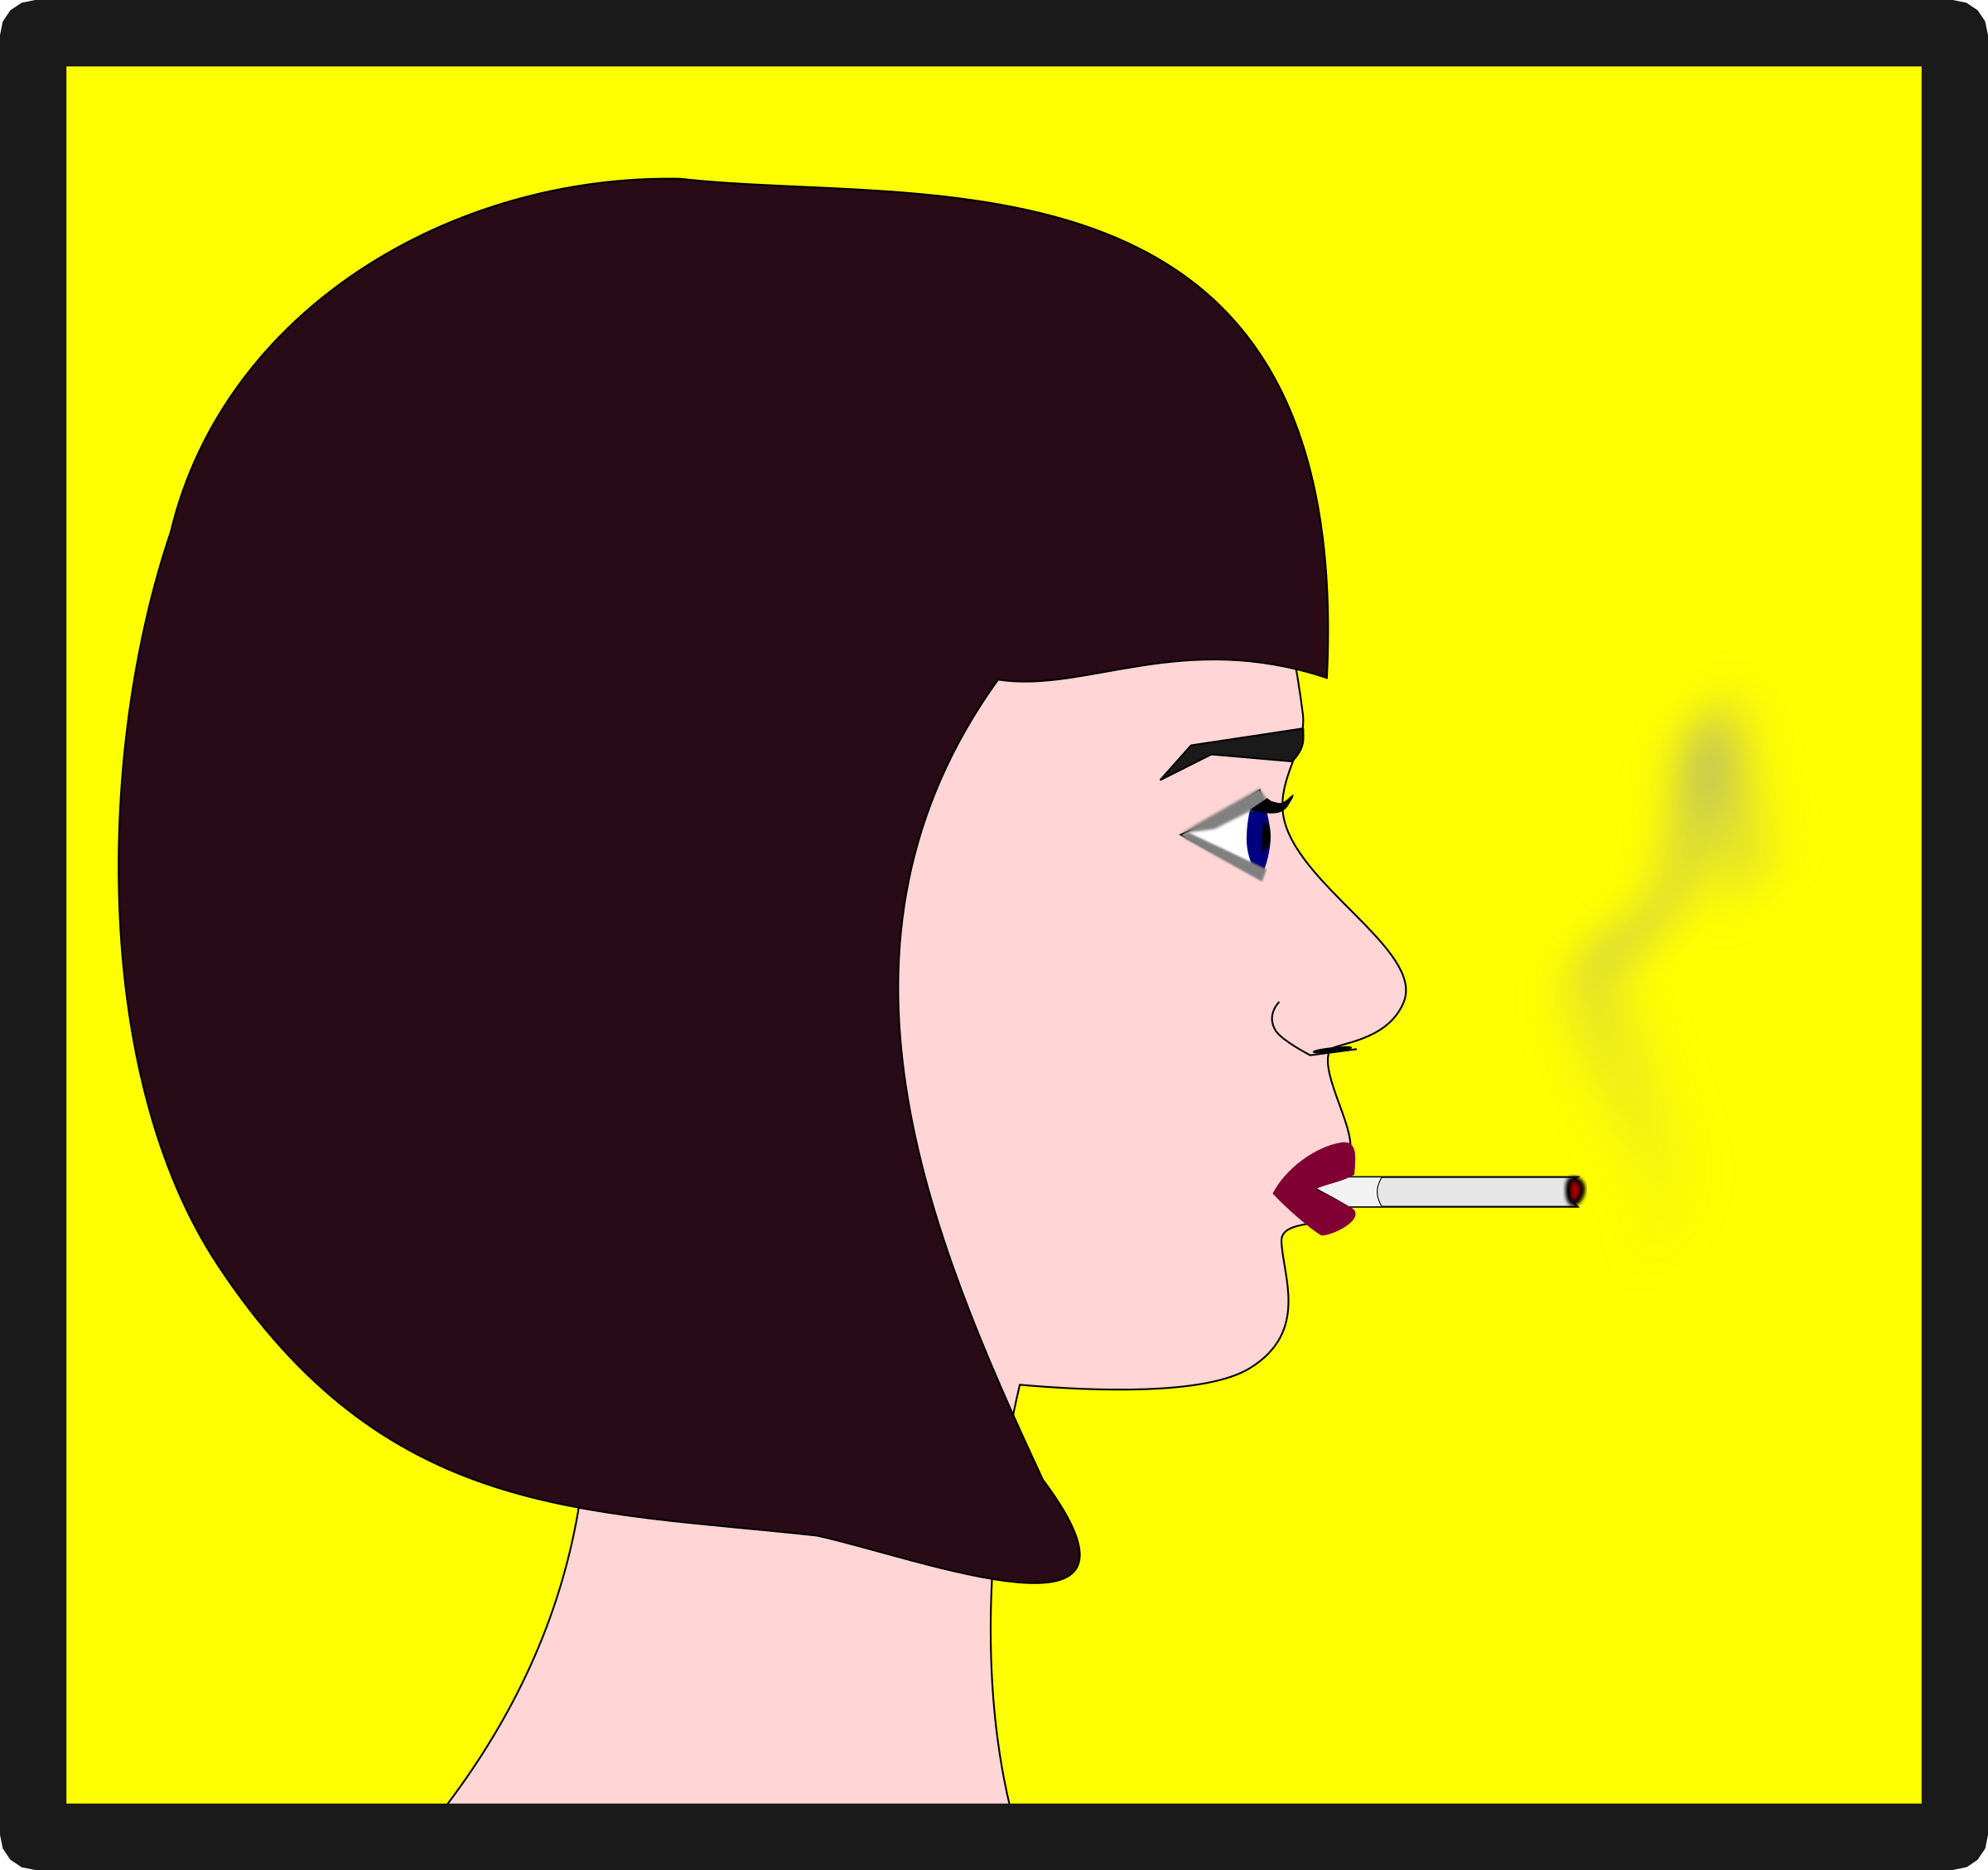 Woman with Cigarette by OlKu